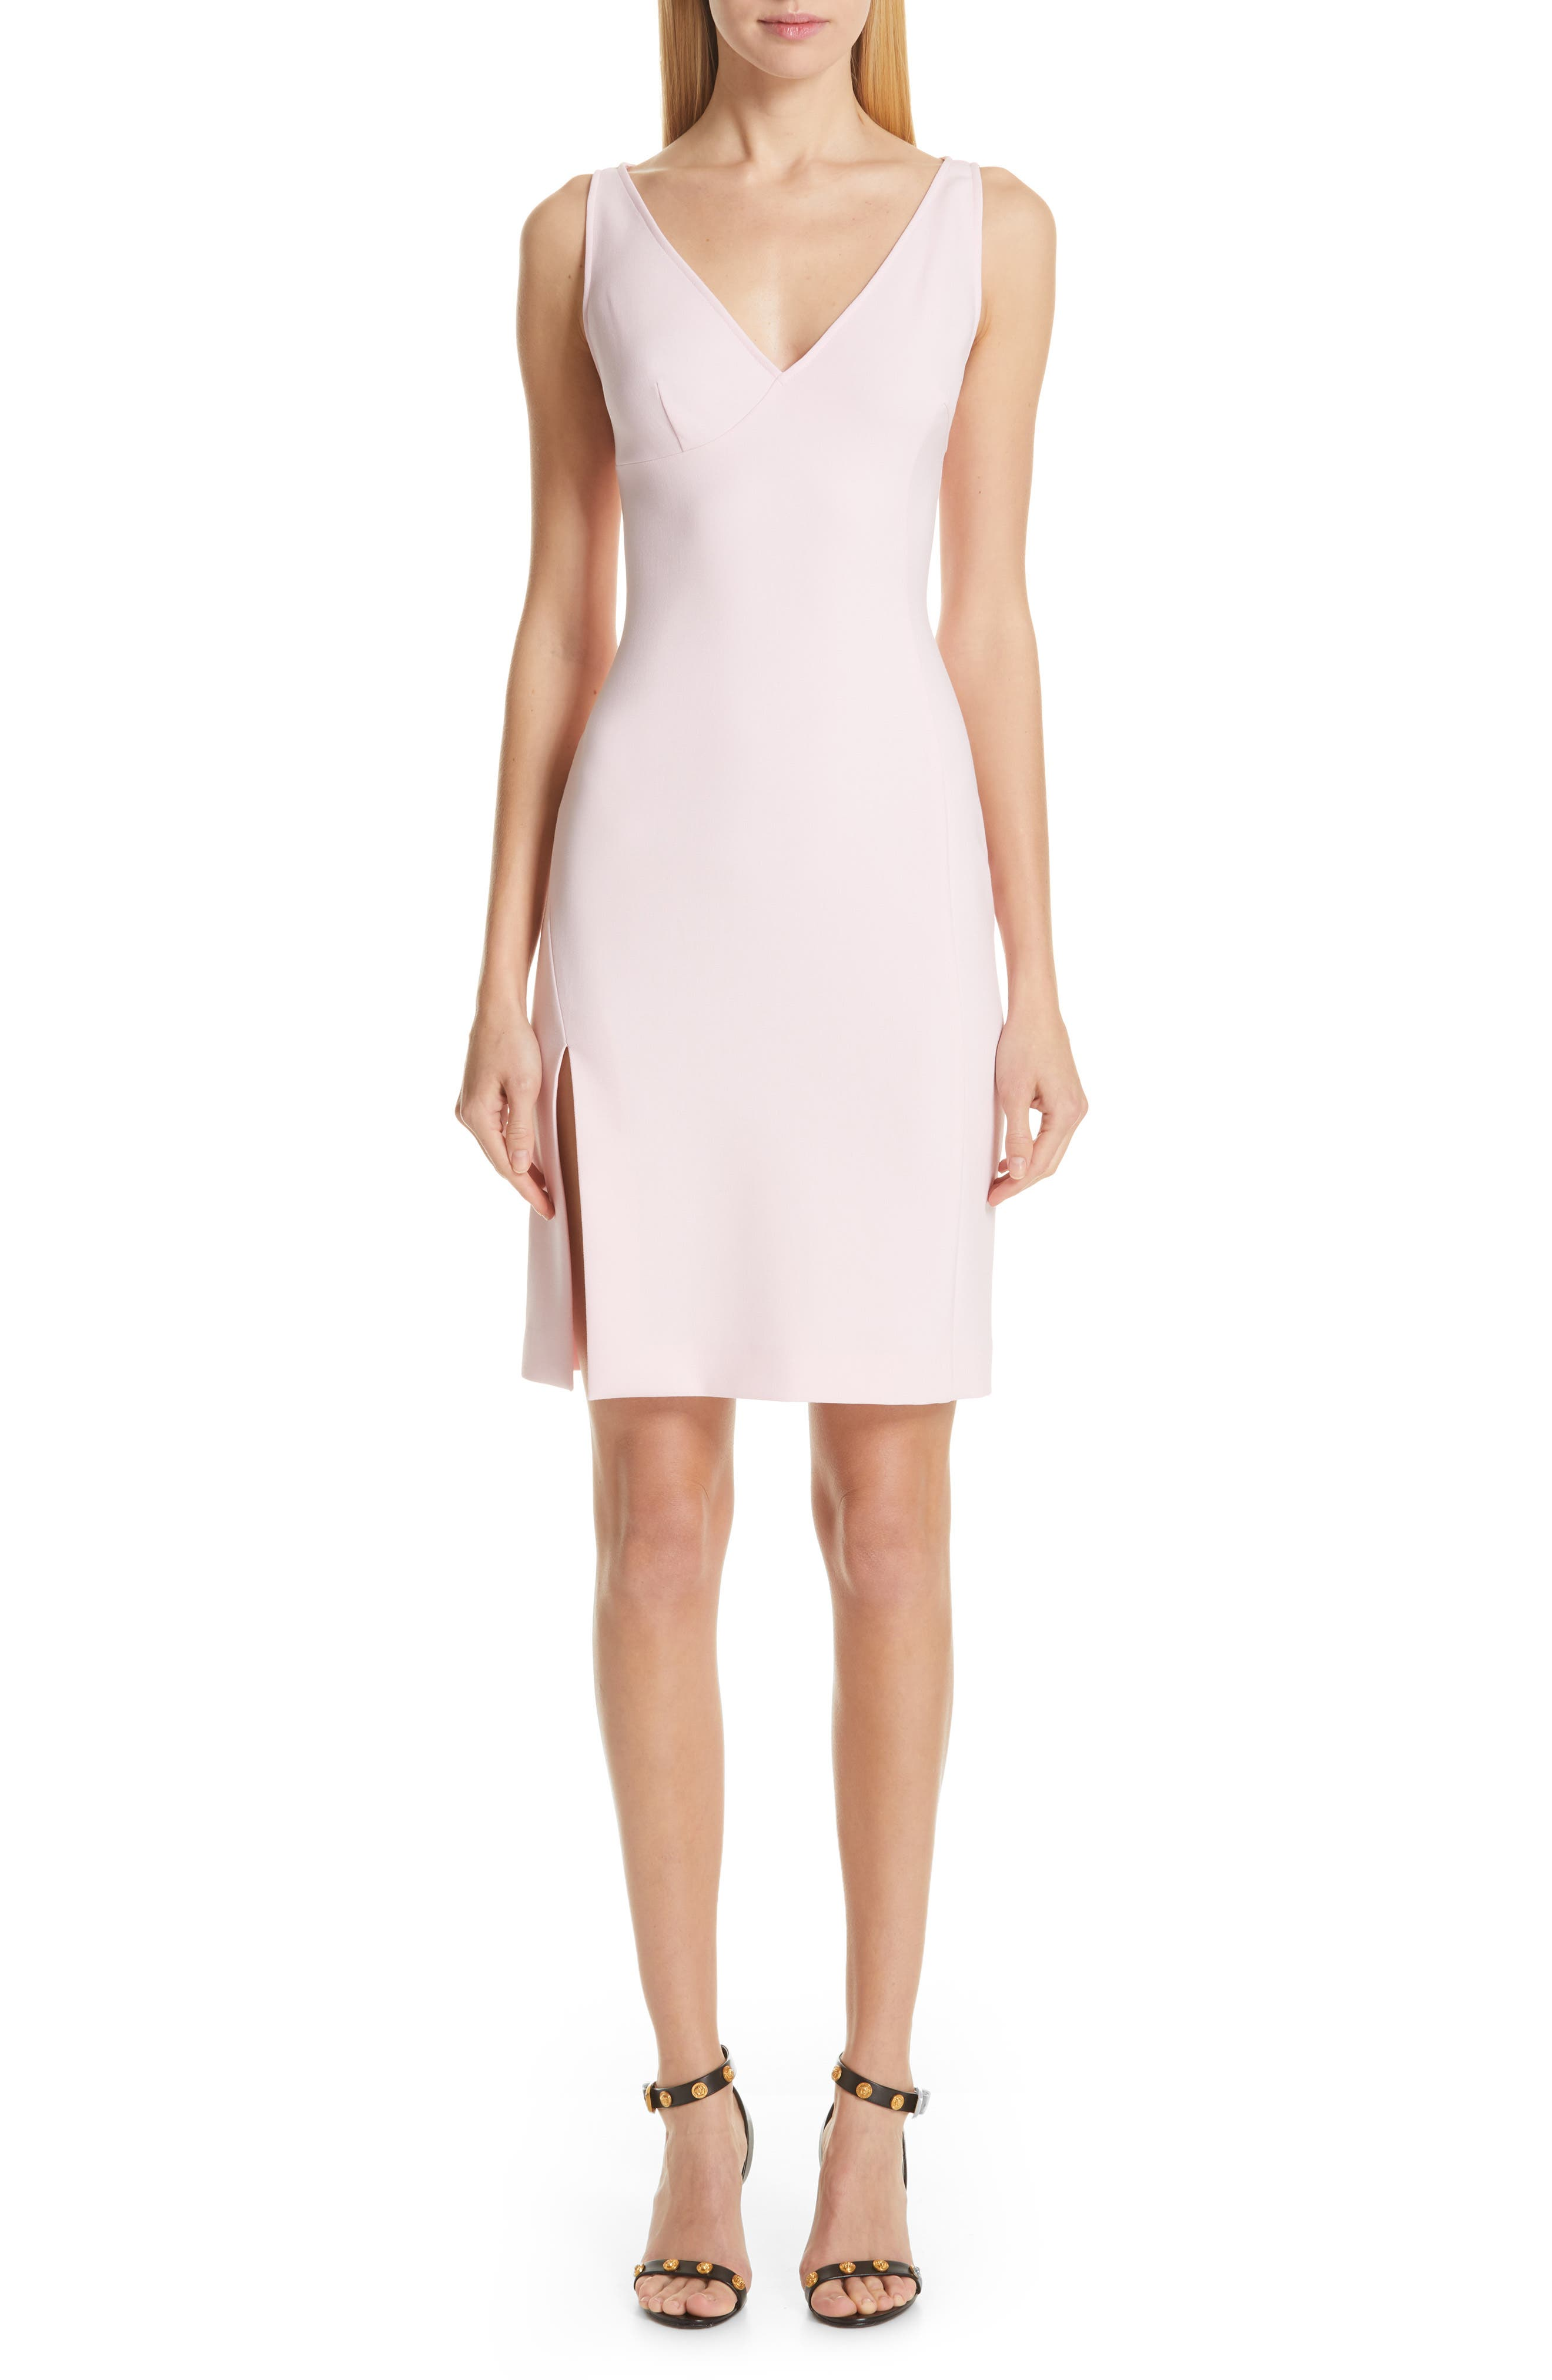 VERSACE COLLECTION, Stretch Cady Sheath Dress, Main thumbnail 1, color, PASTEL ROSE